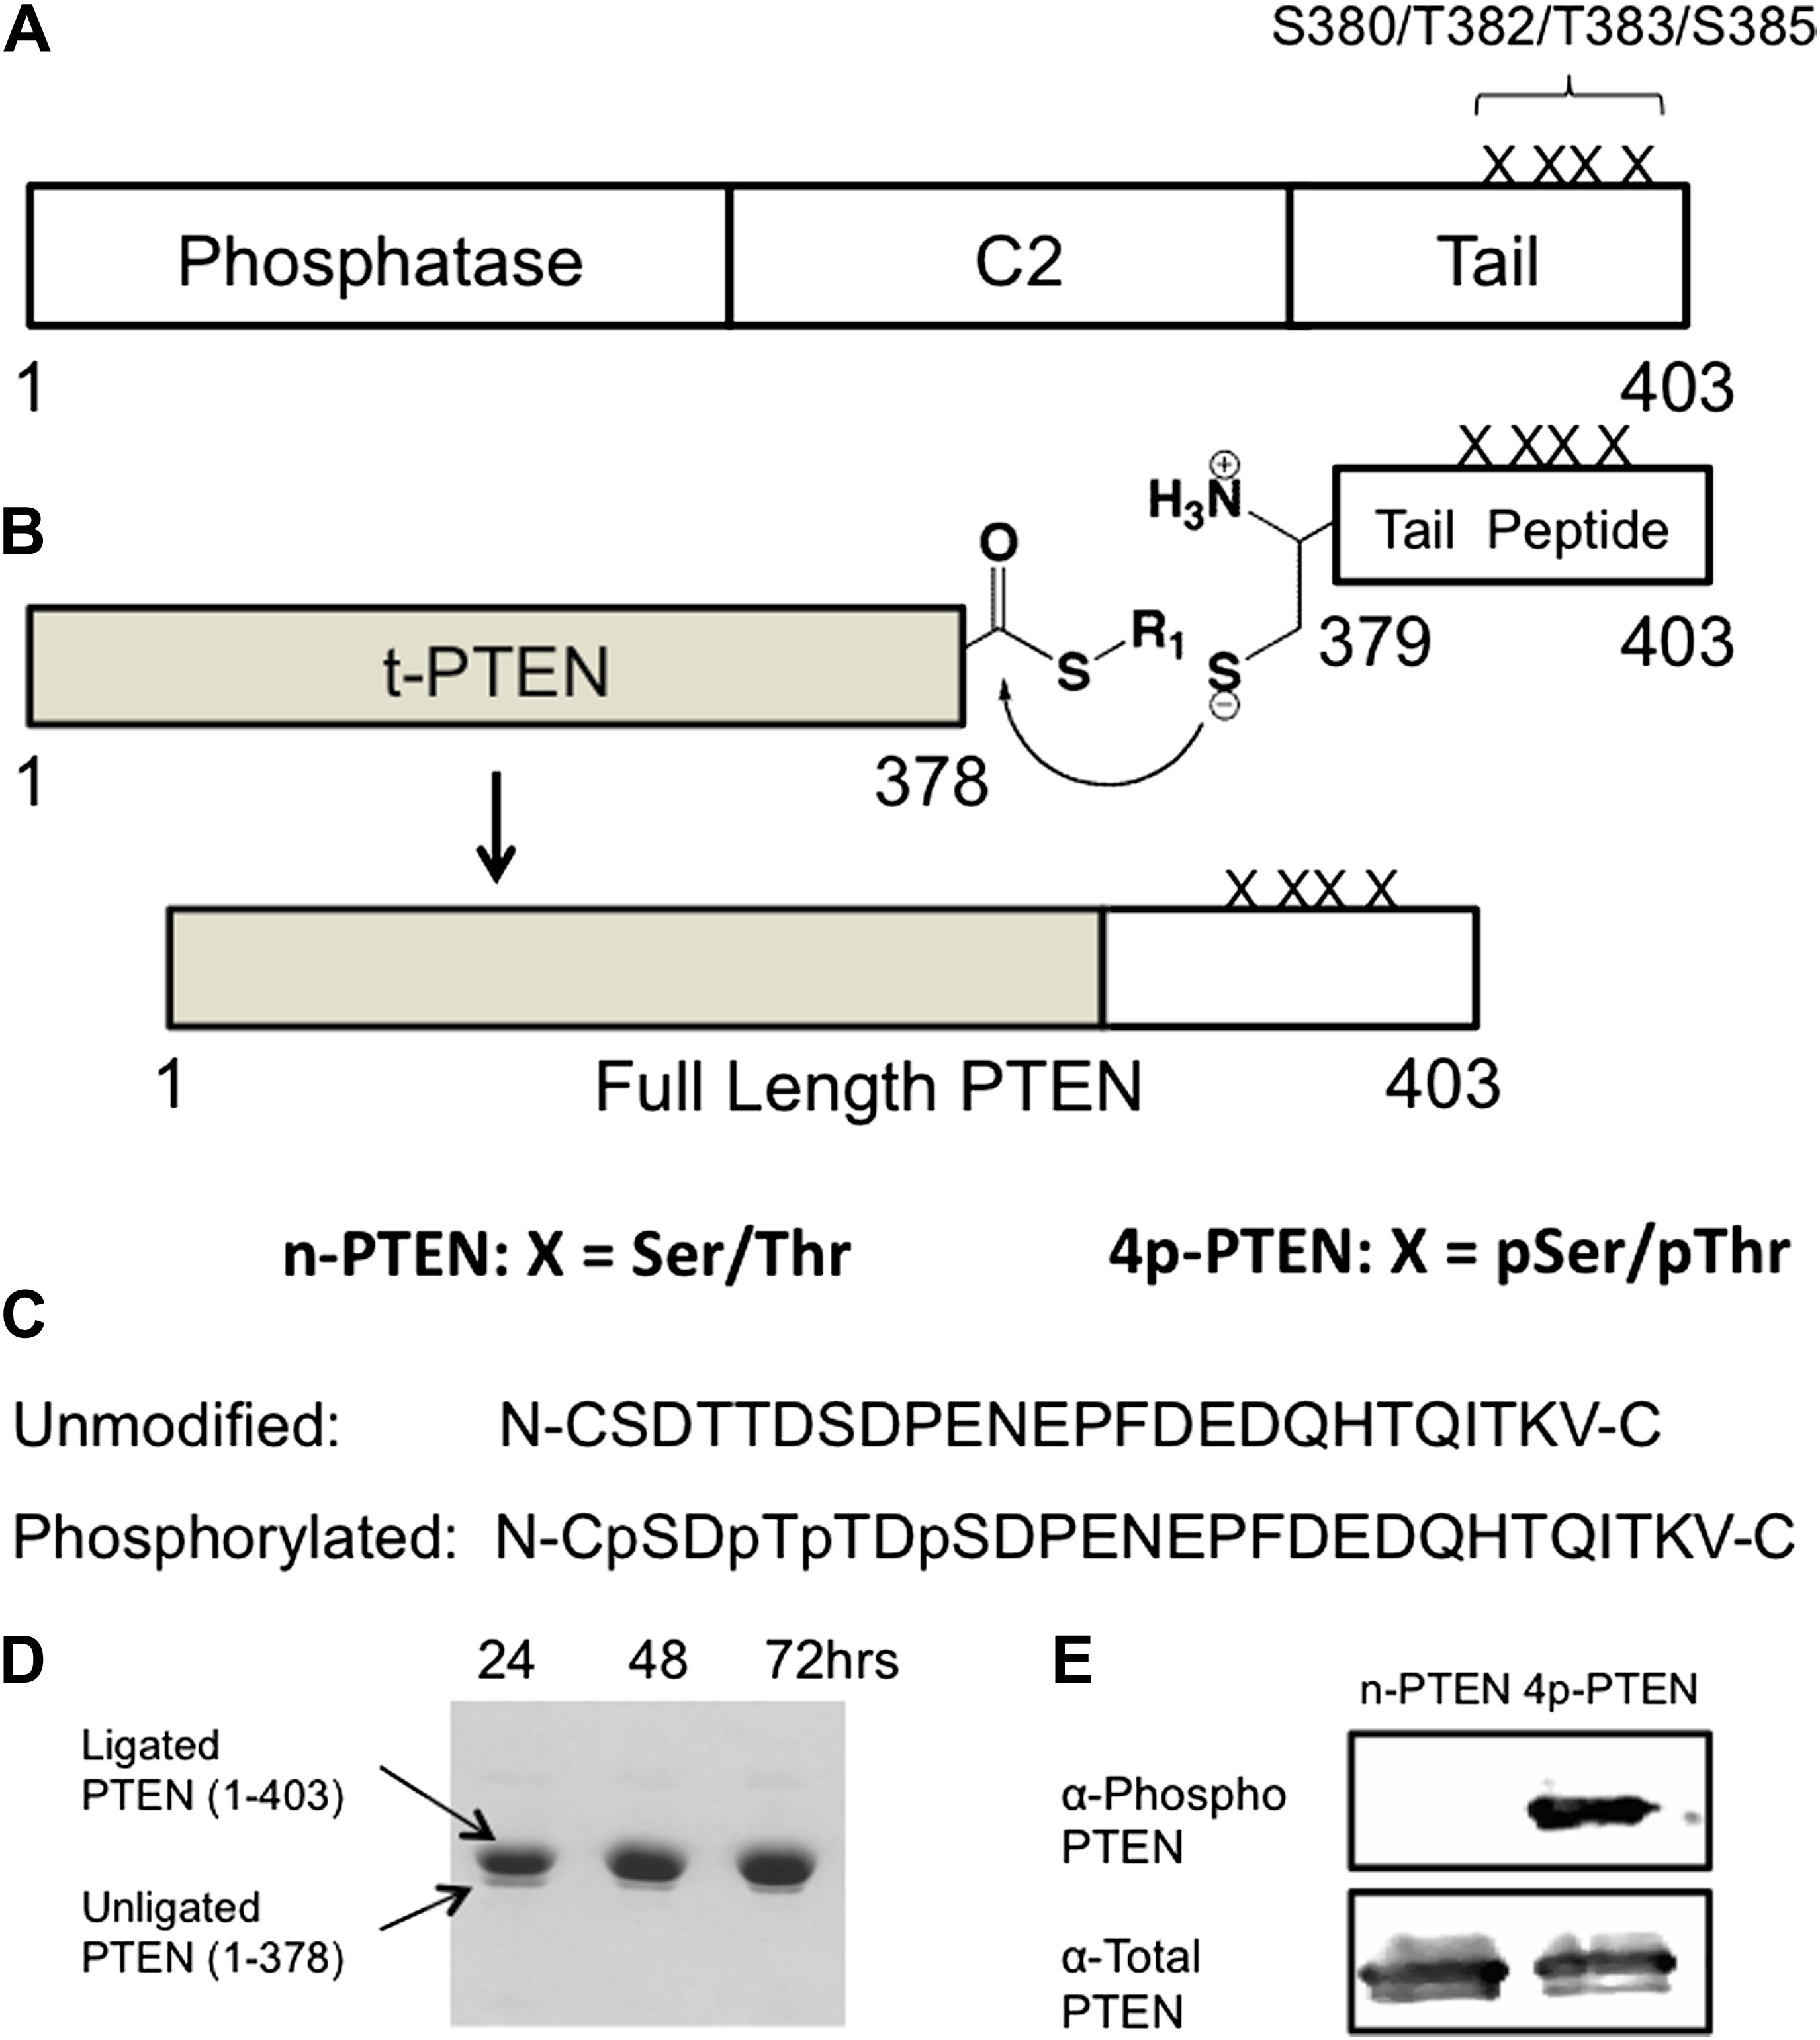 protein semisynthesis and expressed protein ligation The intein splicing and epl have been already proven to be useful for protein semisynthesis and for various expressed protein ligation (epl.